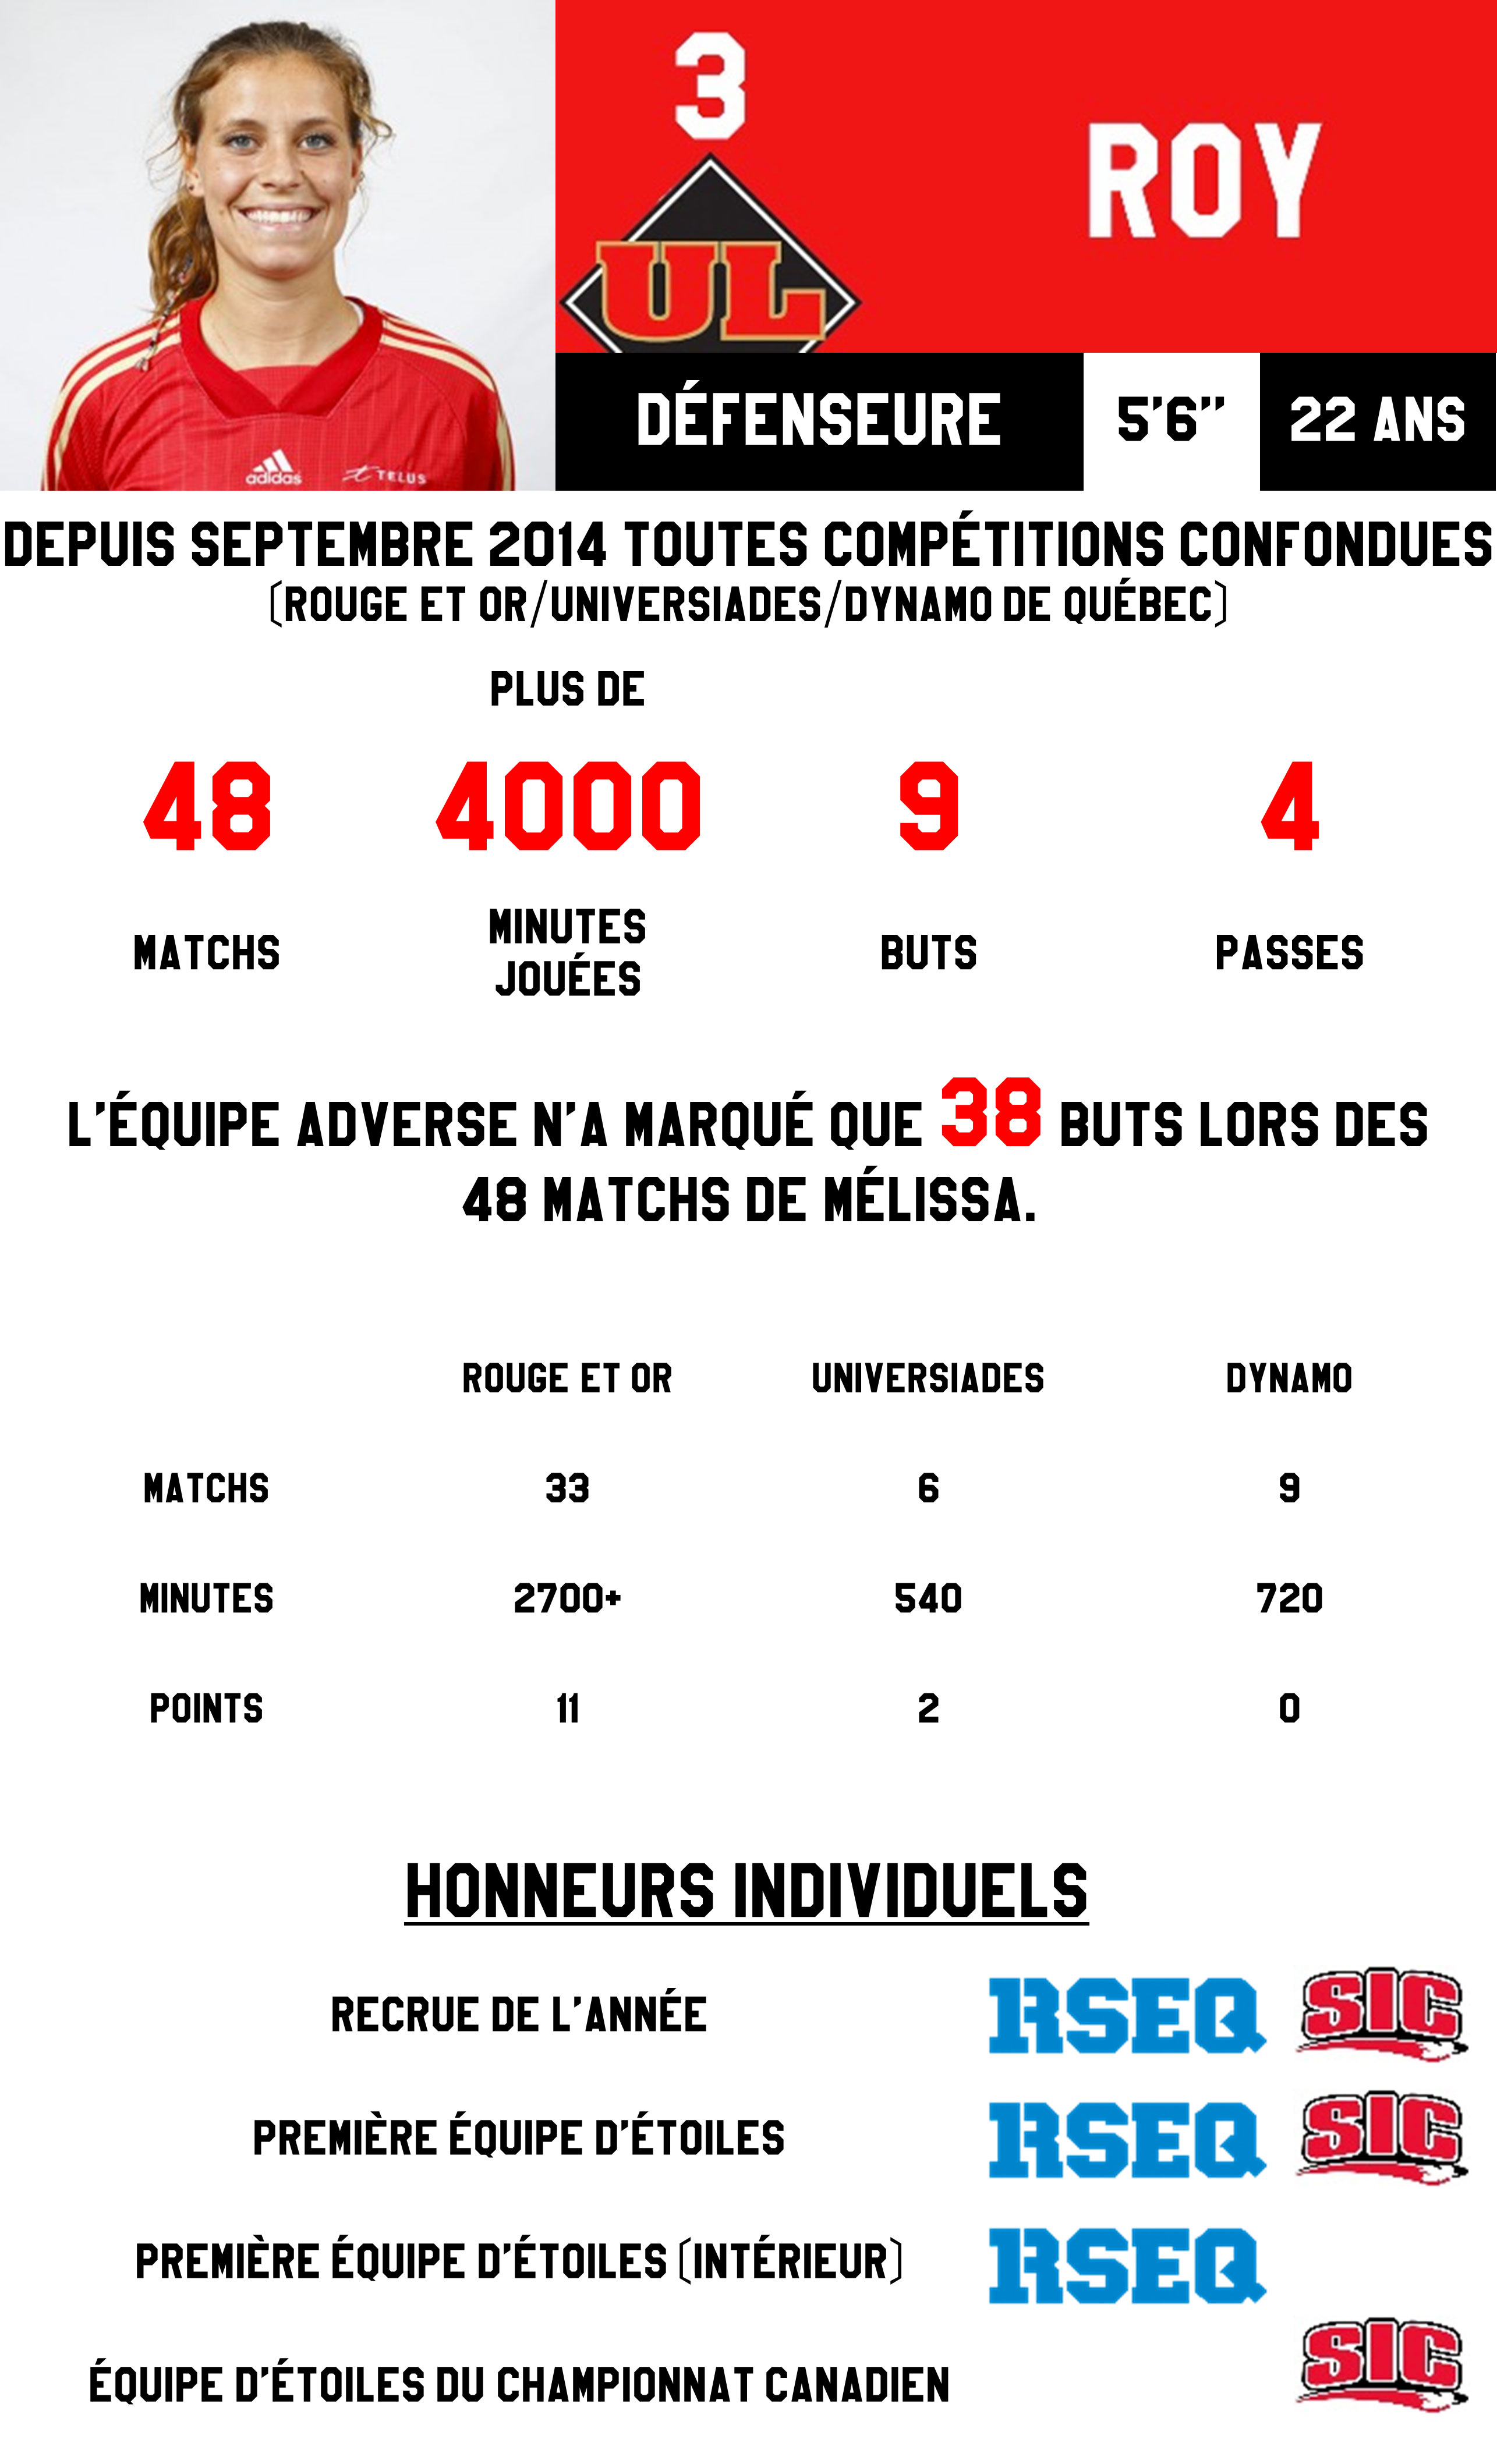 MelissaRoy---Infographie-Guillaume-Villemaire